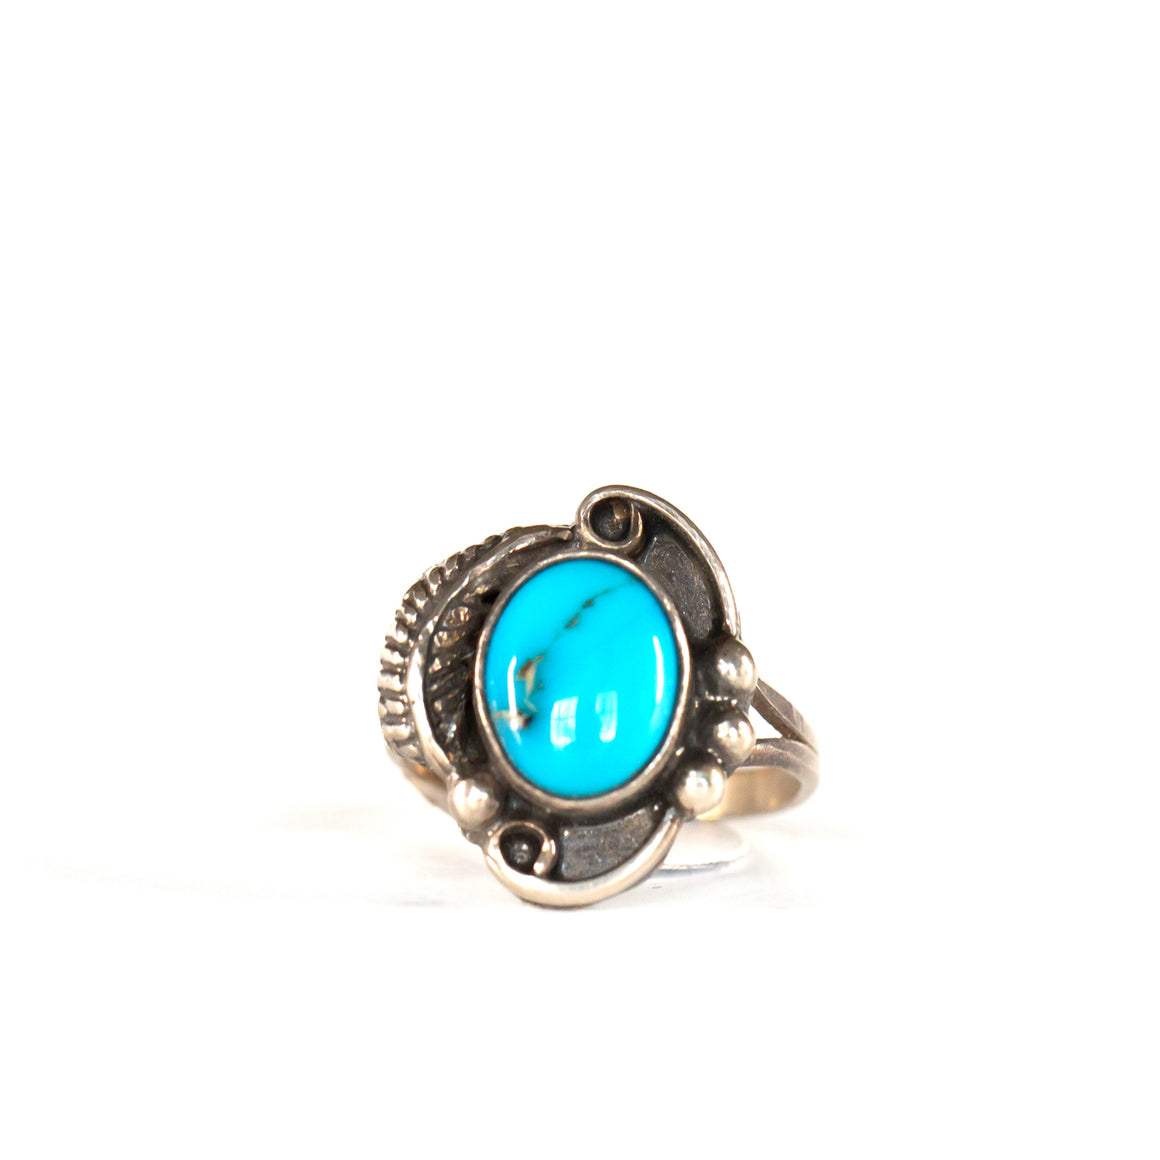 VINTAGE JEWELRY | TURQUOISE STERLING RING (SIZE 5.5)